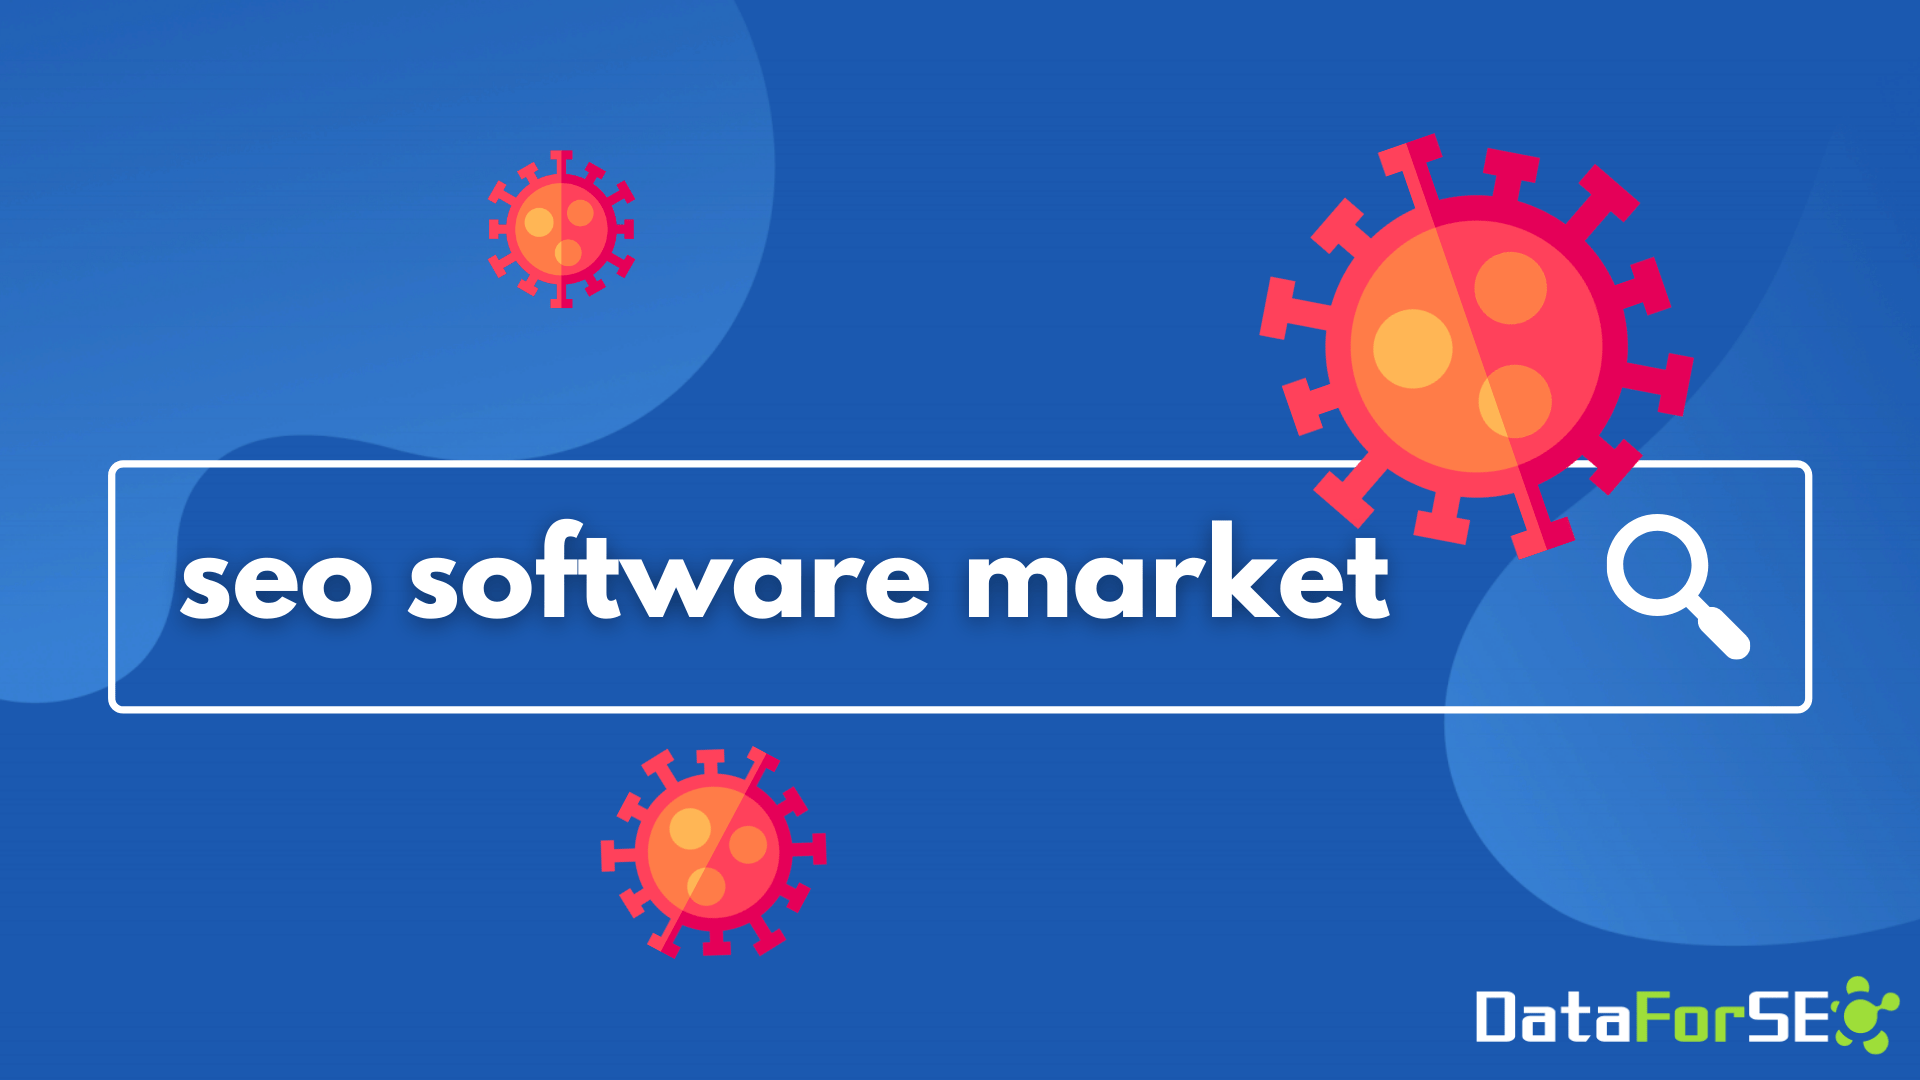 seo software market and covid-19